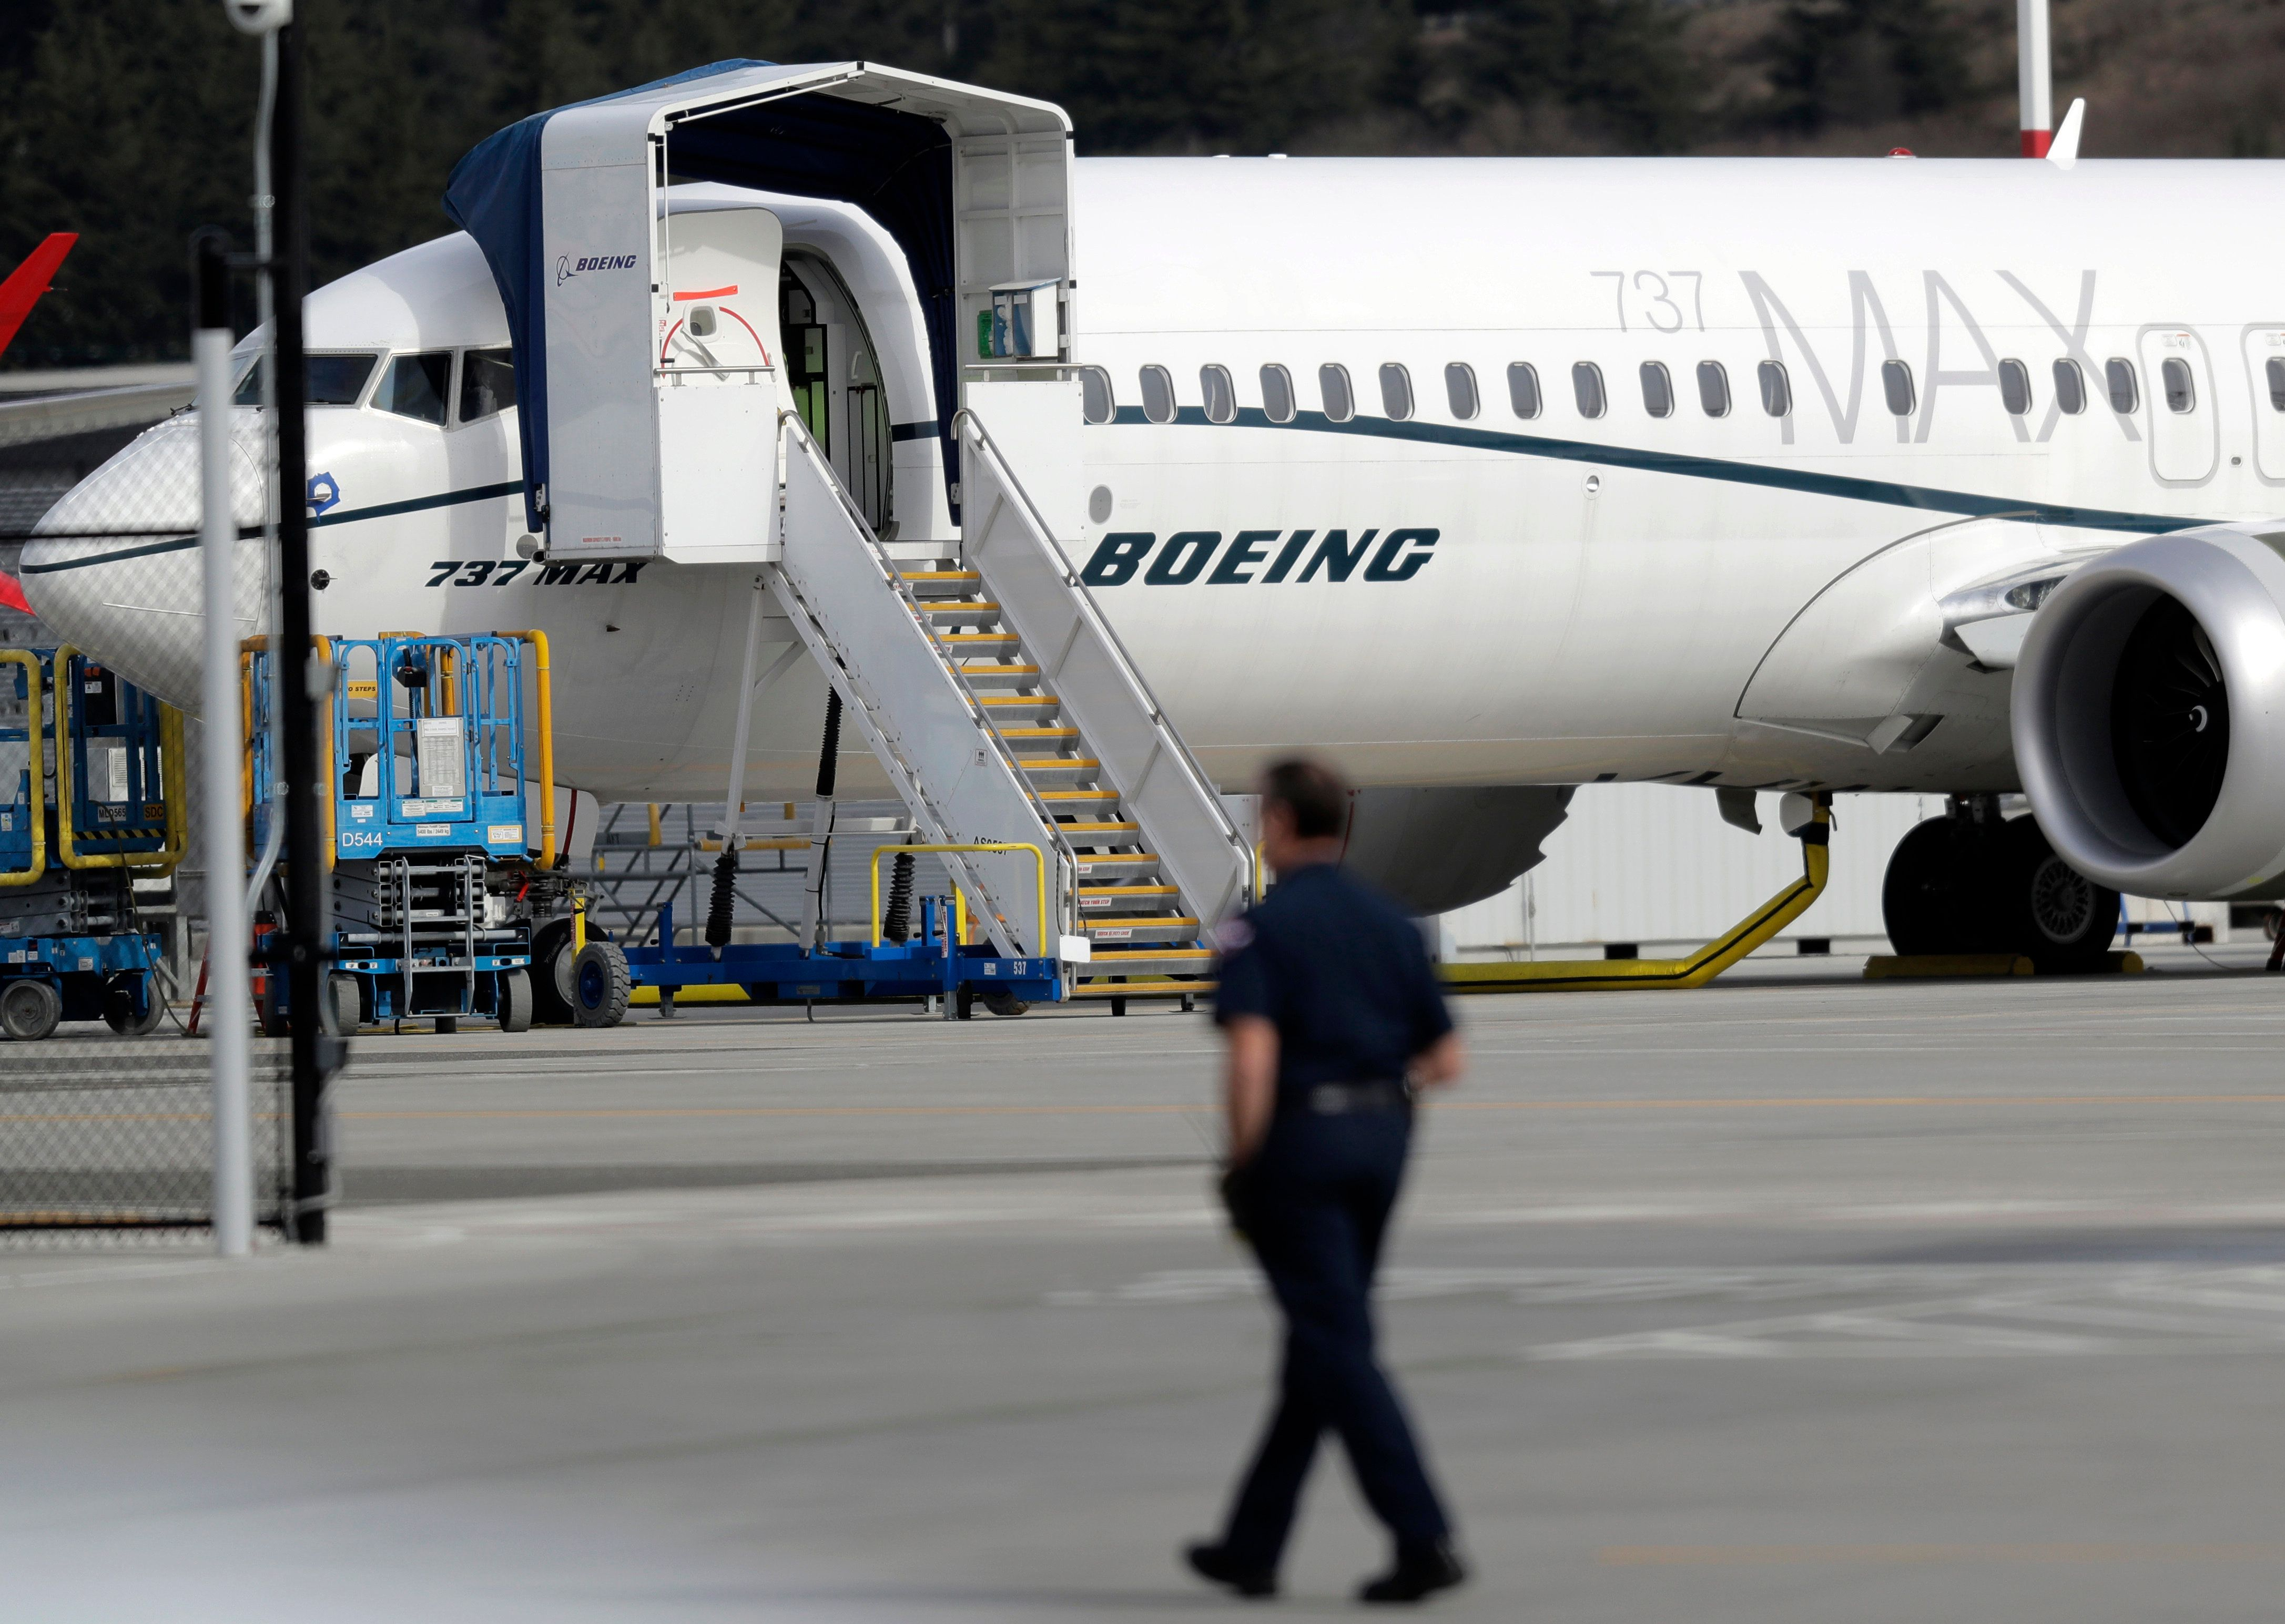 Report: Safety Analysis Of 737 MAX Software Program Had 'Crucial